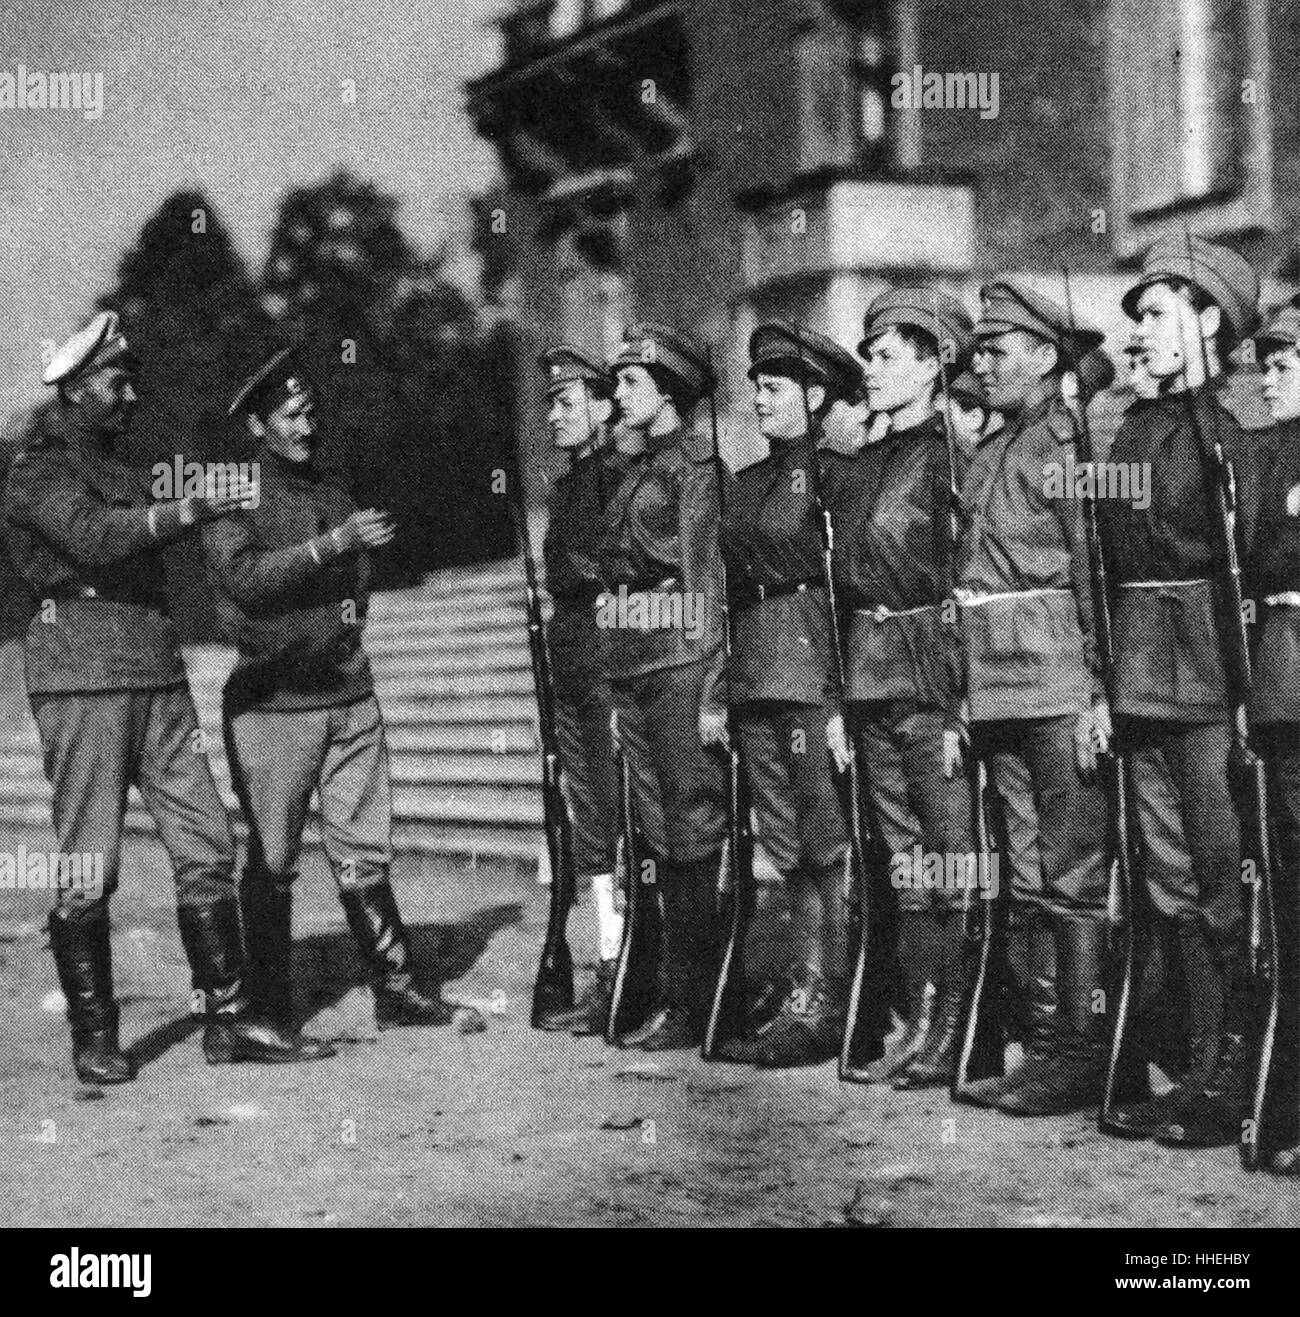 Photograph of the First Women's Battalion of Death during the Russian Revolution. Dated 20th Century - Stock Image